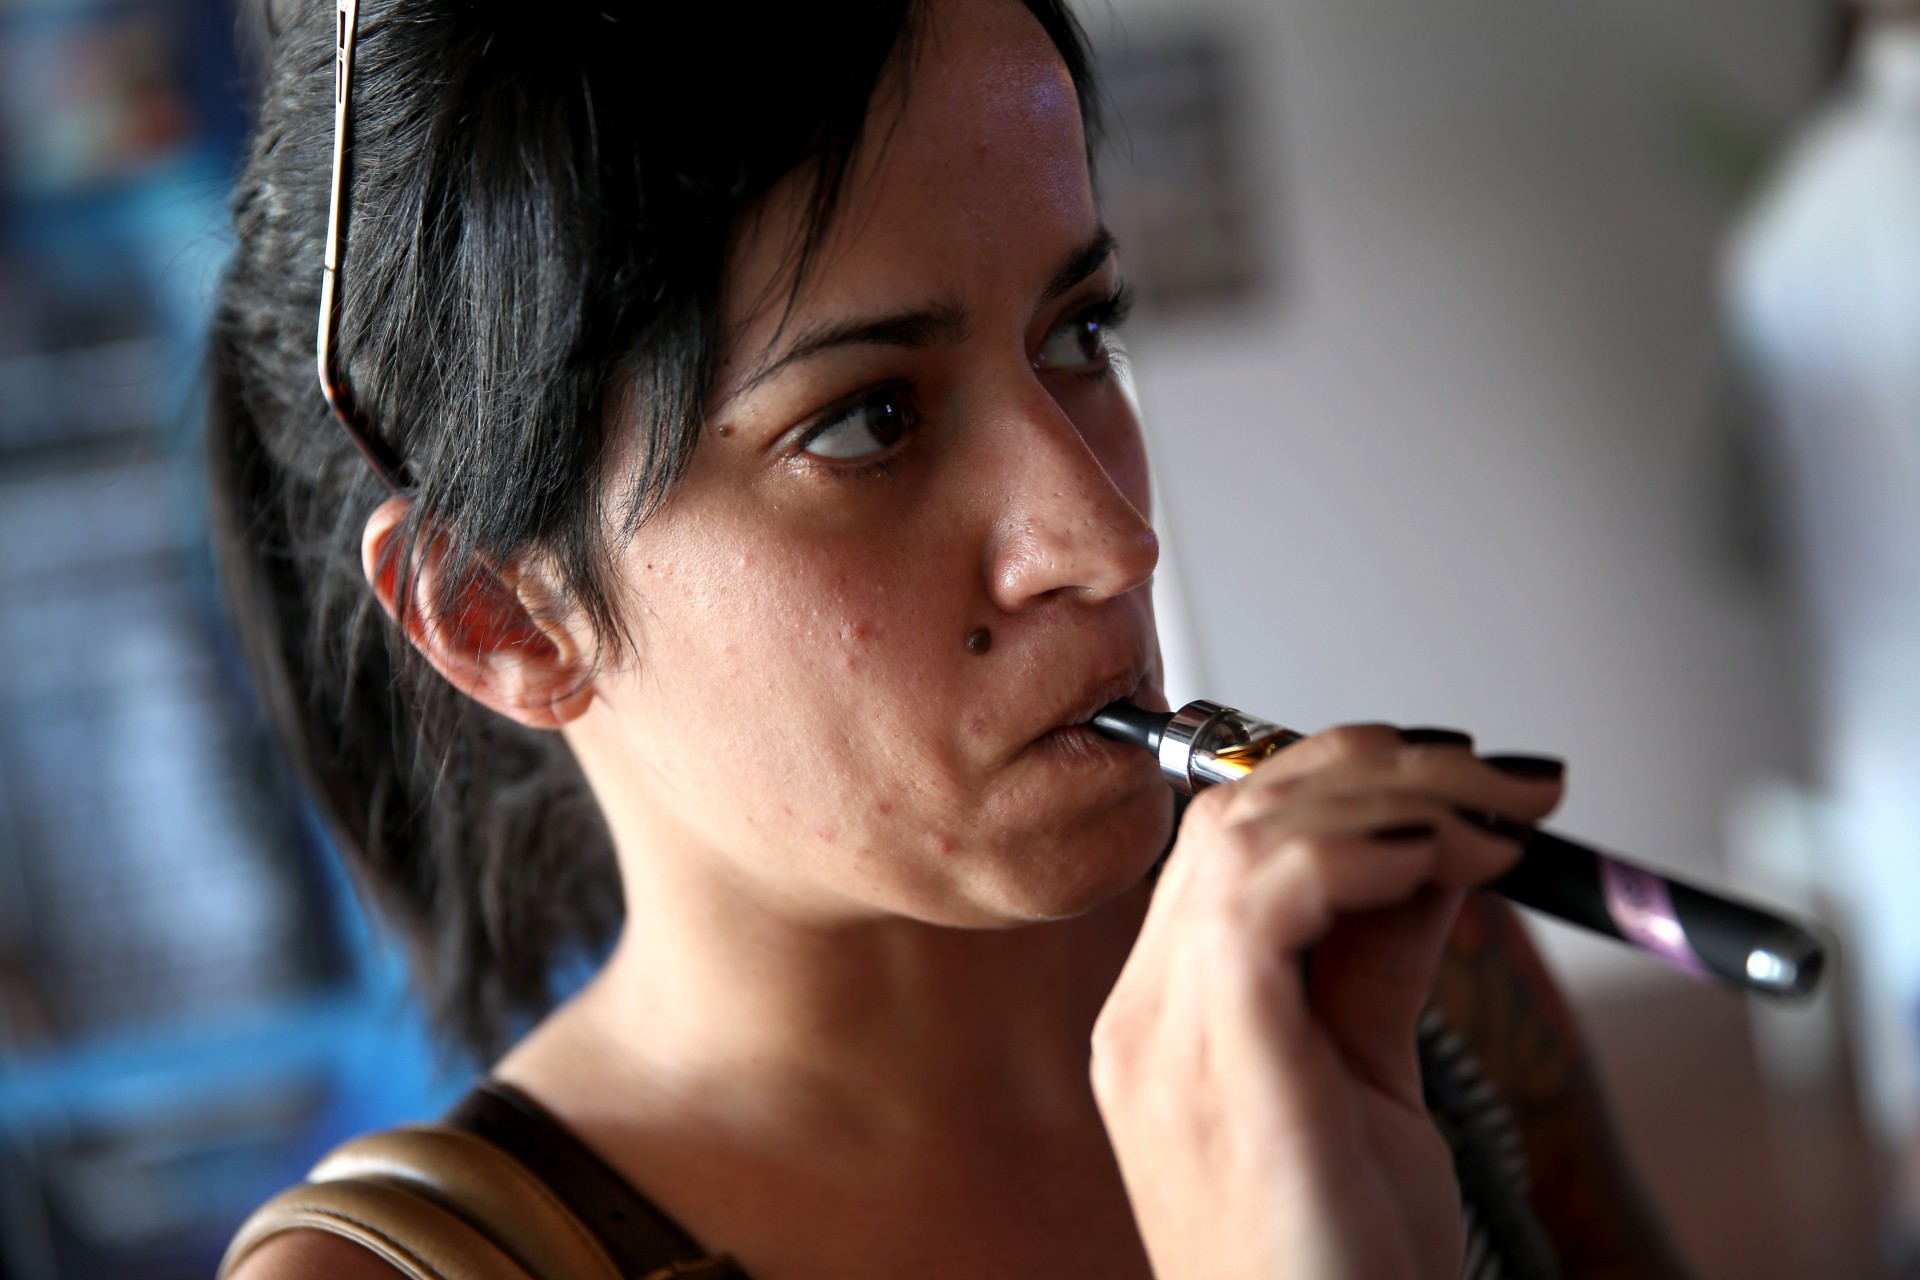 MIAMI, FL - FEBRUARY 20: Yenisley Dieppa tries different flavors as she purchases an electronic cigarette at the Vapor Shark store on February 20, 2014 in Miami, Florida. As the popularity of E- cigarettes continue to grow, leading U.S. tobacco companies such as Altria Group Inc. the maker of Marlboro cigarettes are annoucing plans to launch their own e-cigarettes as they start to pose a small but growing competitive threat to traditional smokes. (Photo by Joe Raedle/Getty Images)